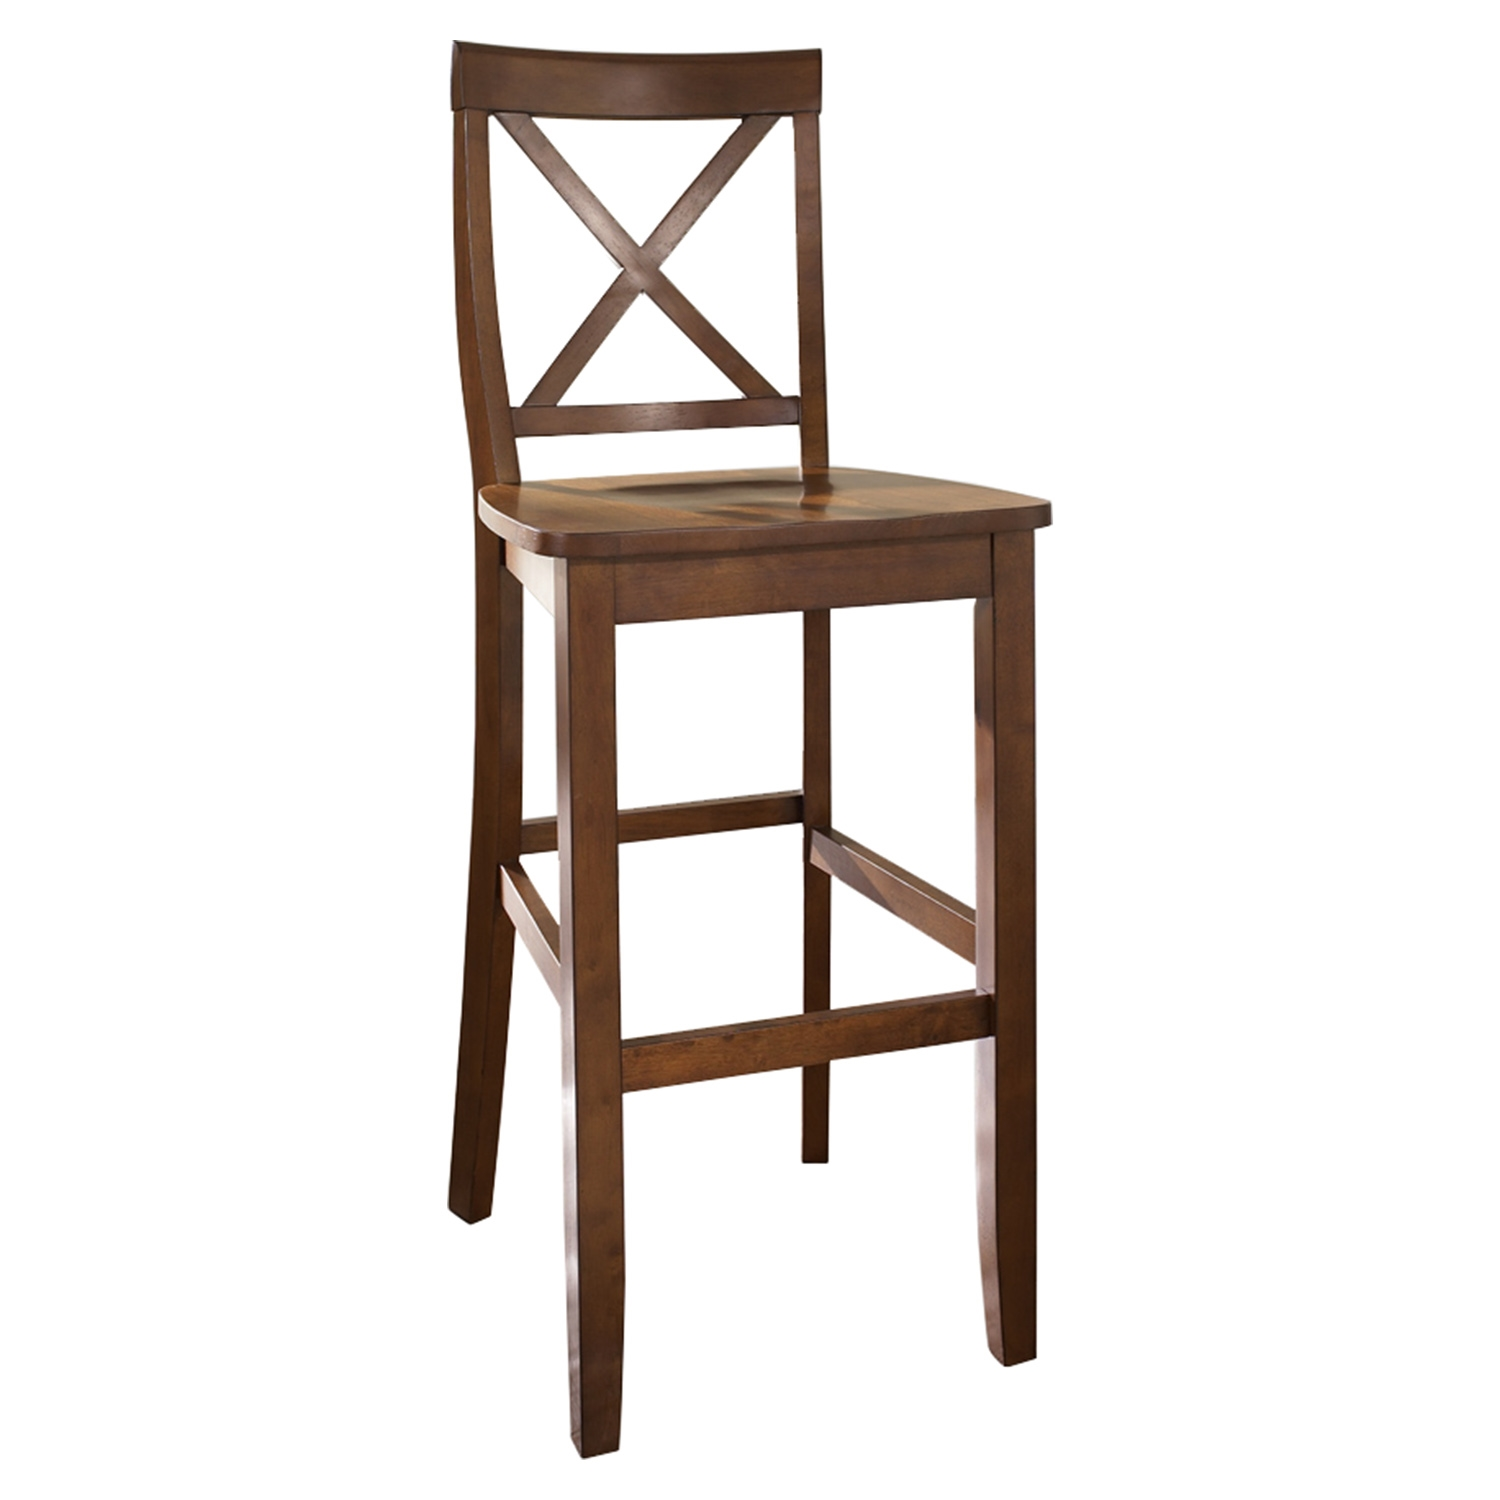 X-Back Bar Stool with 30 Inch Seat Height - Classic Cherry (Set of 2) - CROS-CF500430-CH